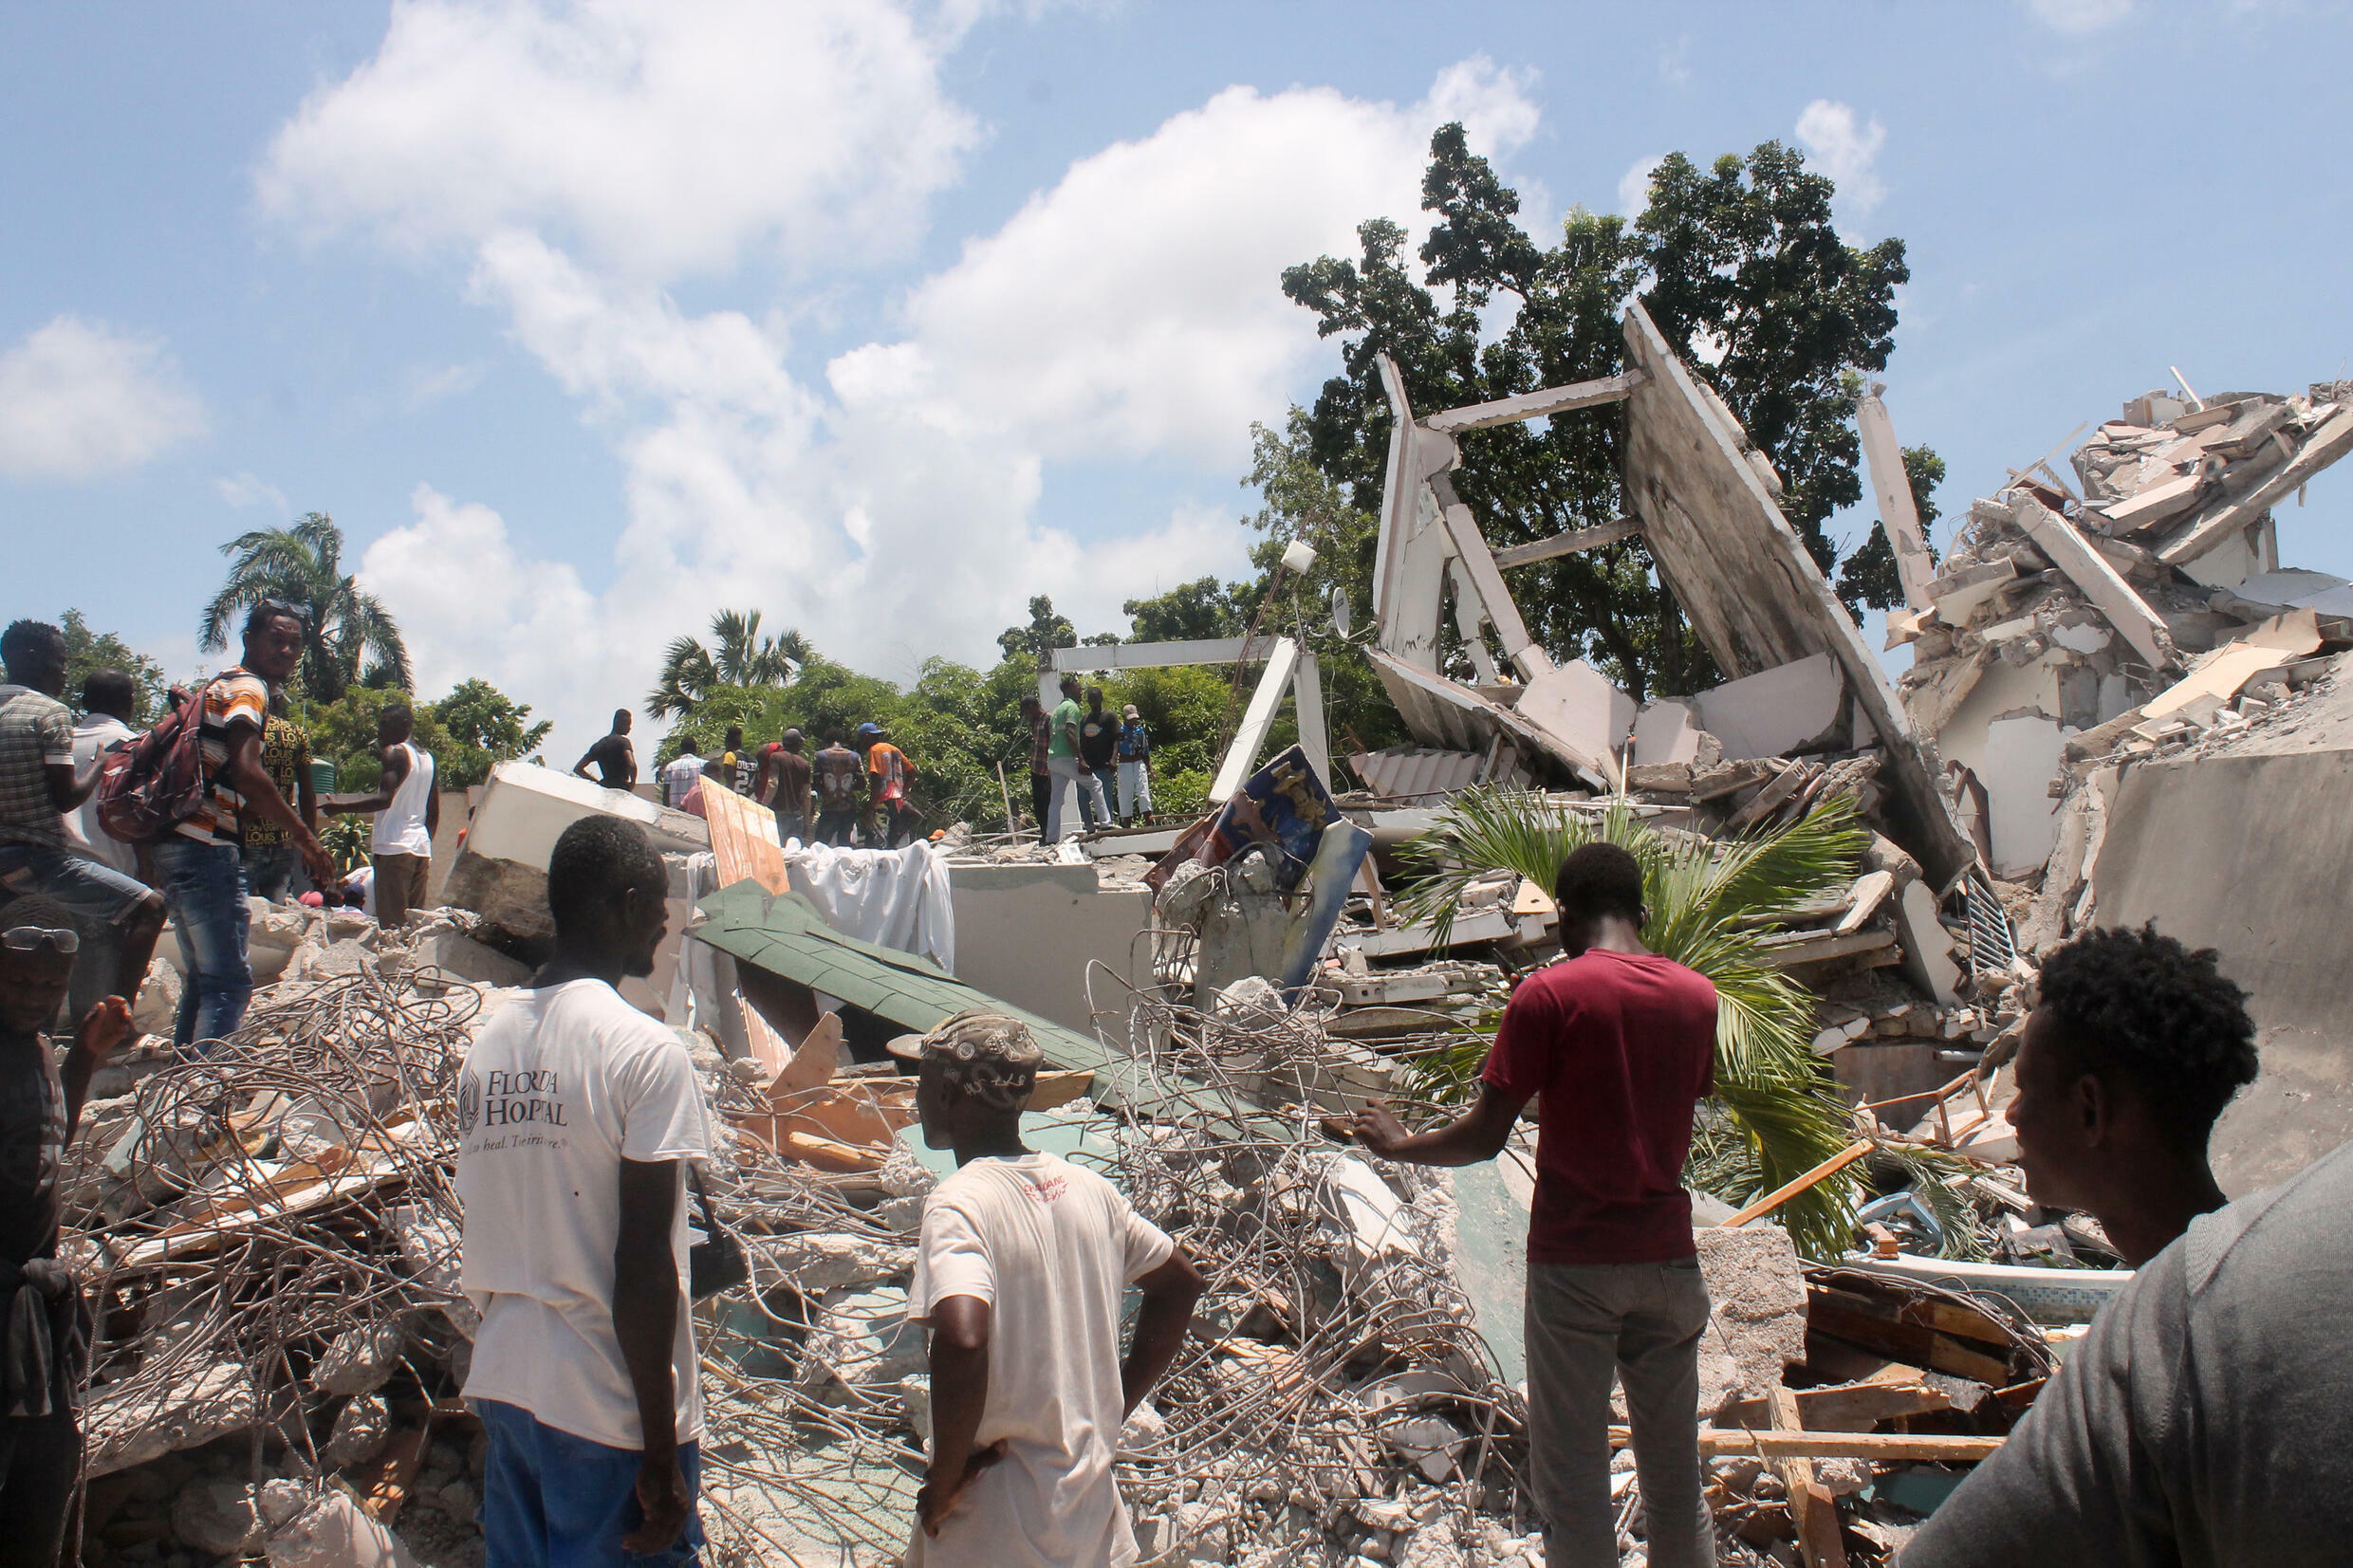 Residents search rubble for survivors in Haiti's Les Cayes after an earthquake struck on August 14, 2021